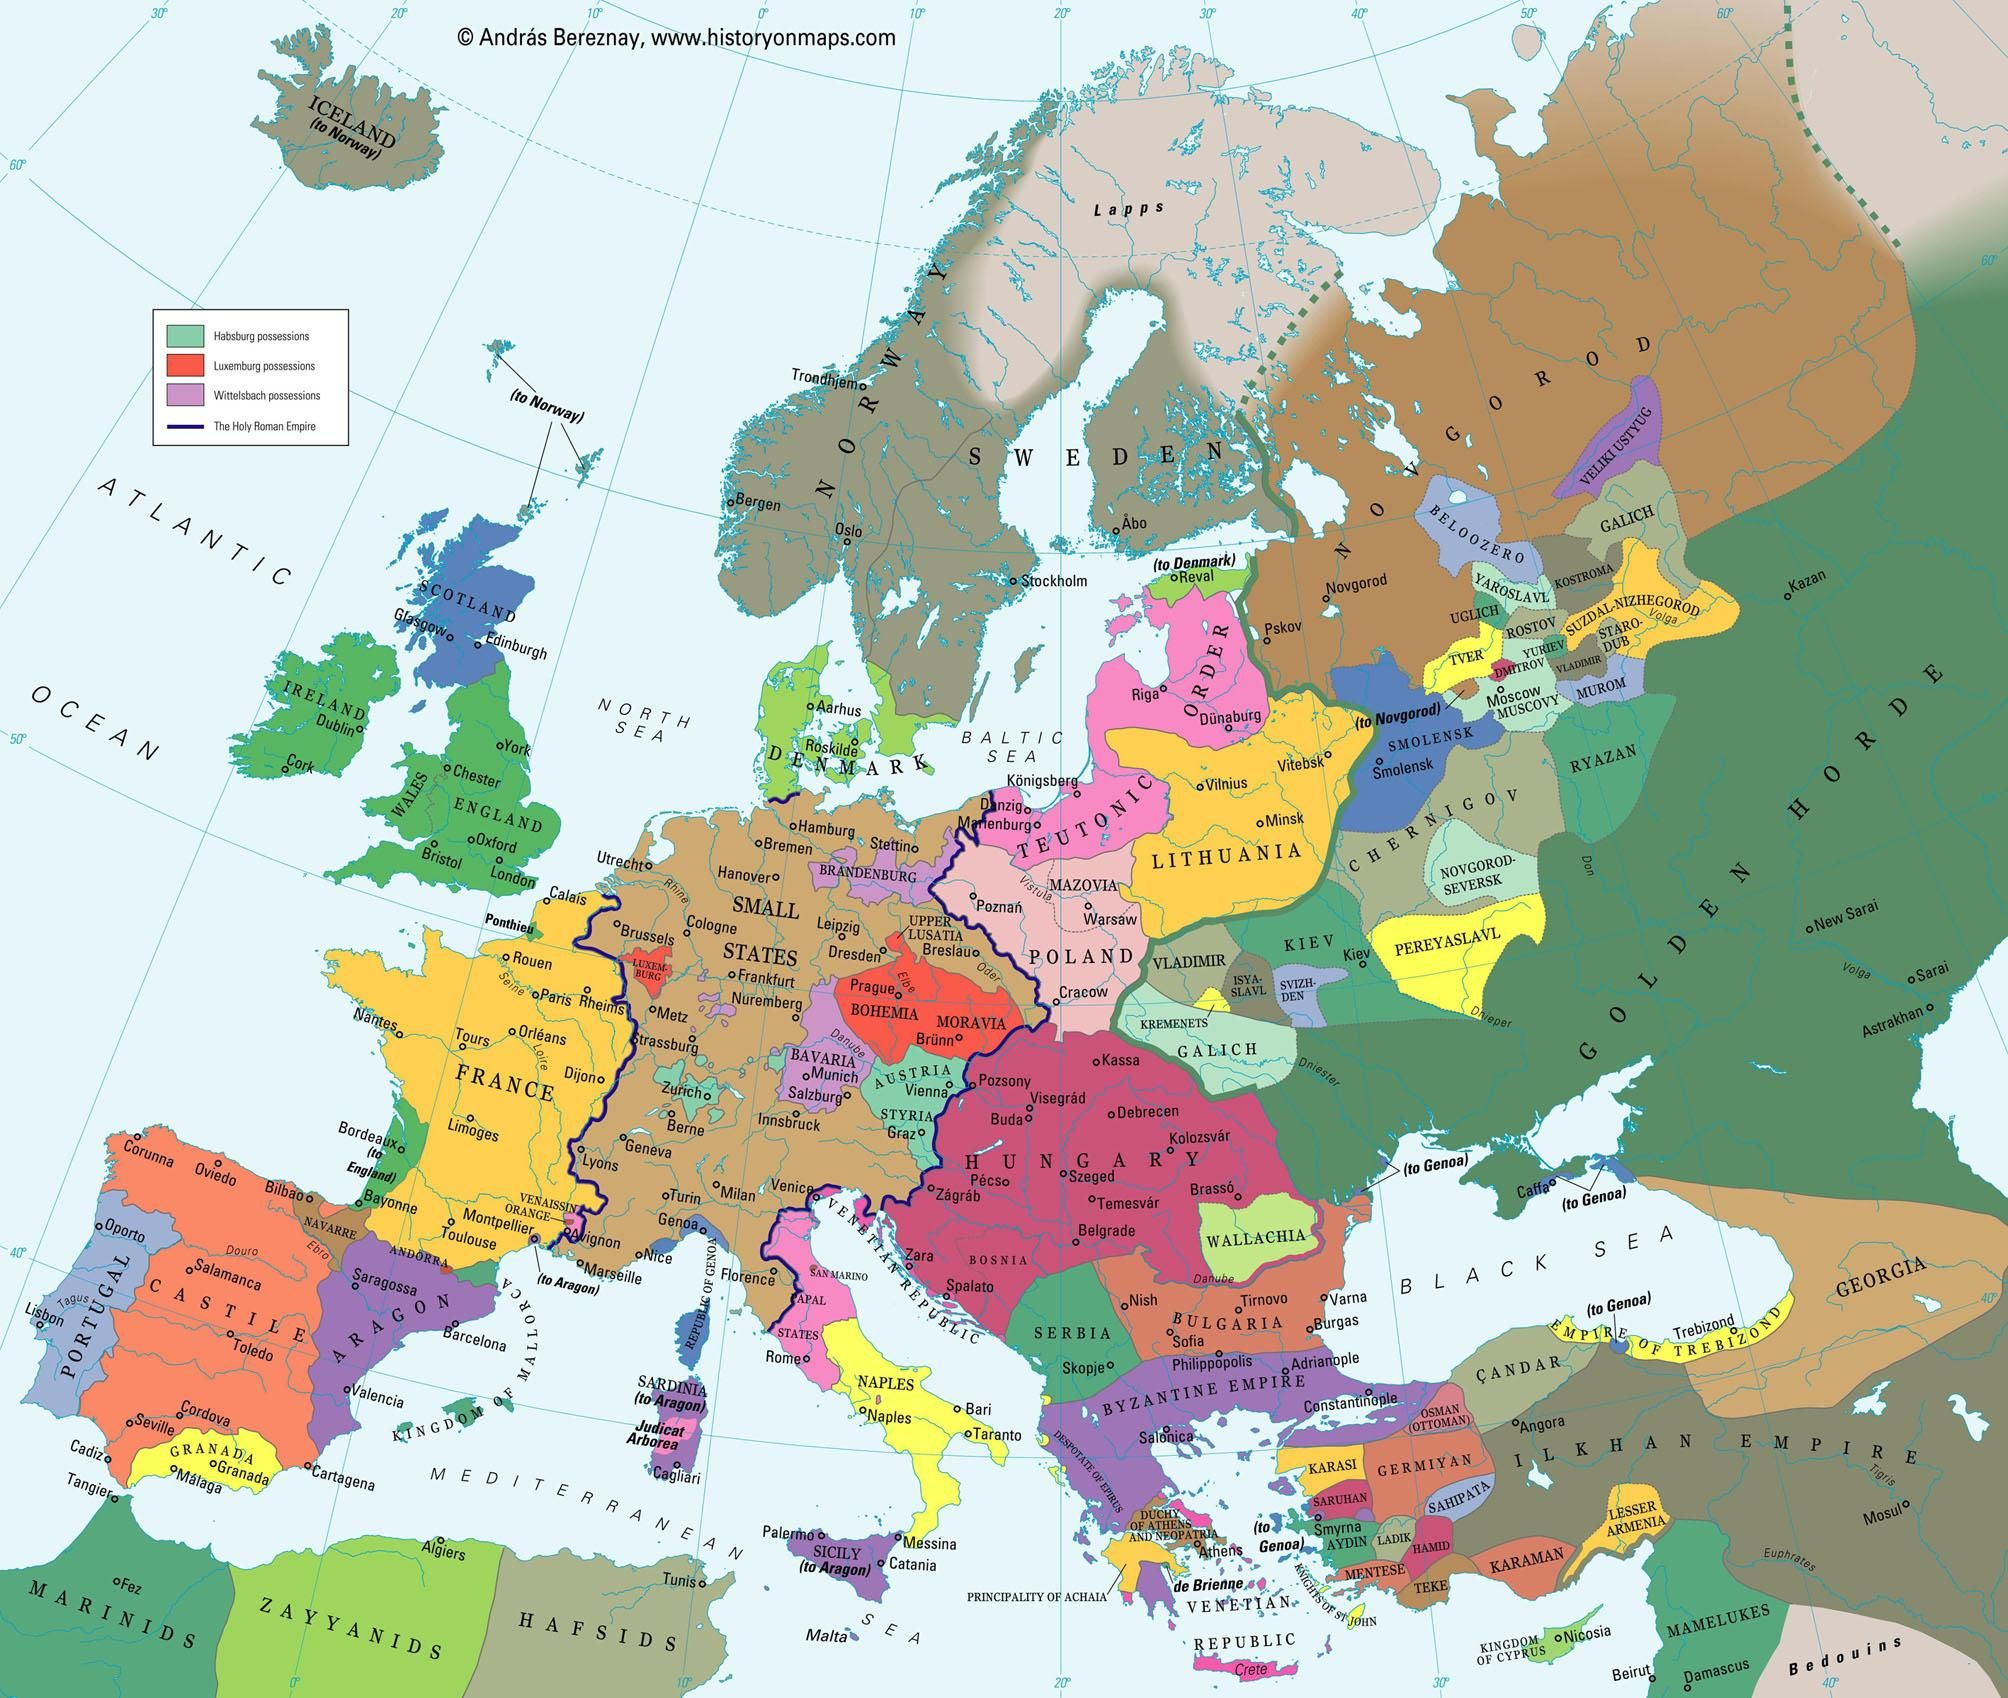 14th Century Map Of Europe.Europe In The Beginning Of The 14th Century History Historical